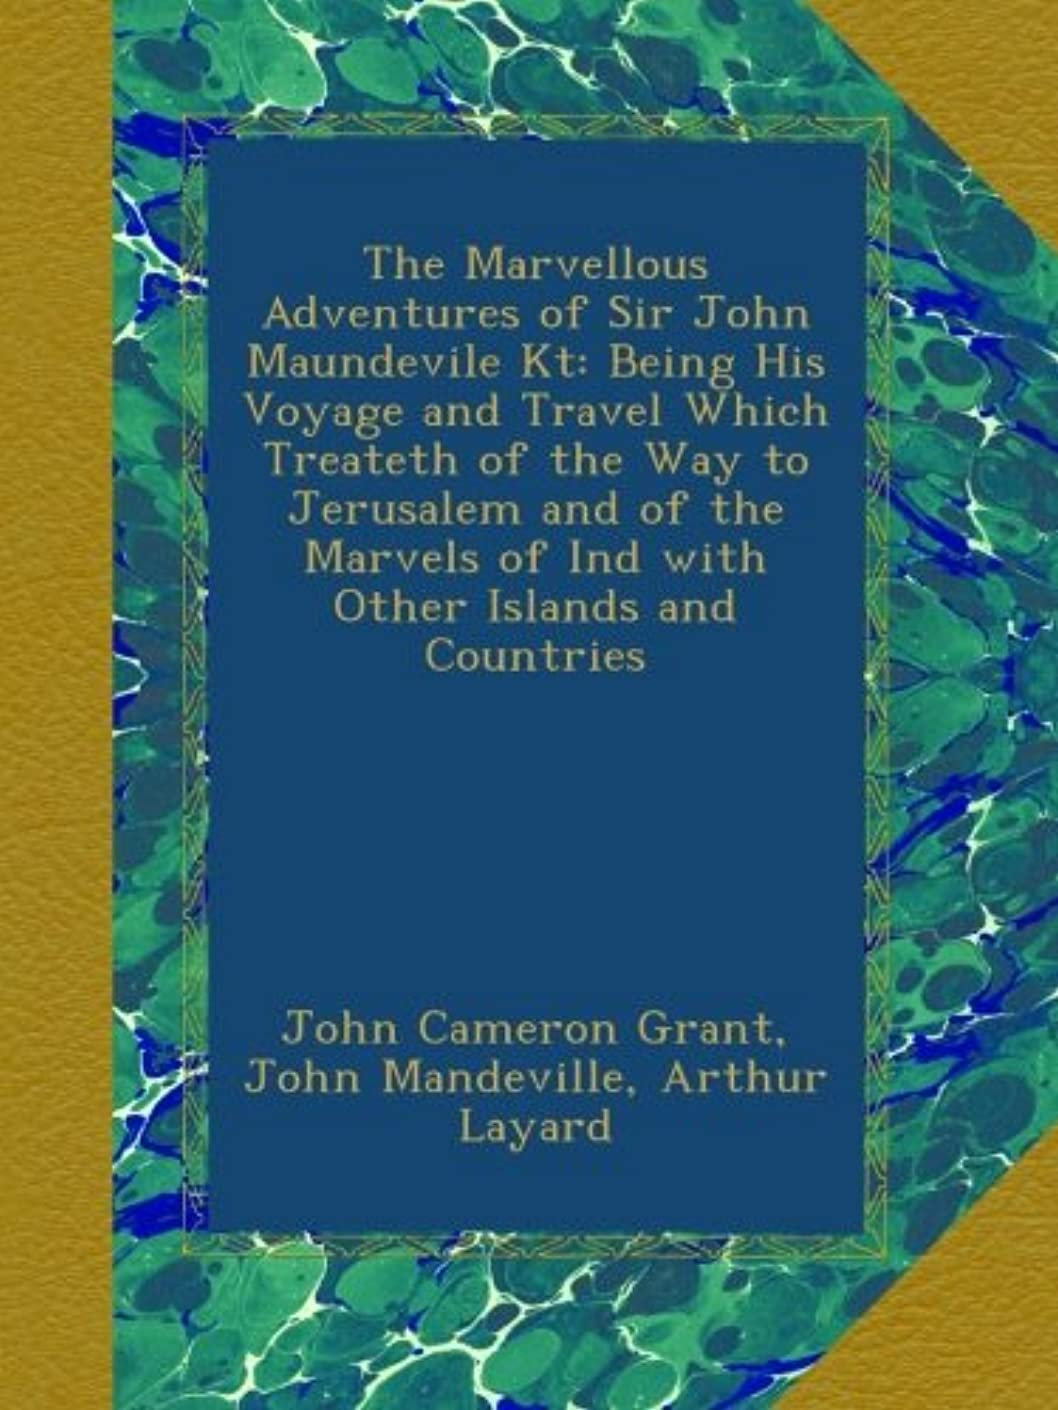 意味する攻撃的医師The Marvellous Adventures of Sir John Maundevile Kt: Being His Voyage and Travel Which Treateth of the Way to Jerusalem and of the Marvels of Ind with Other Islands and Countries